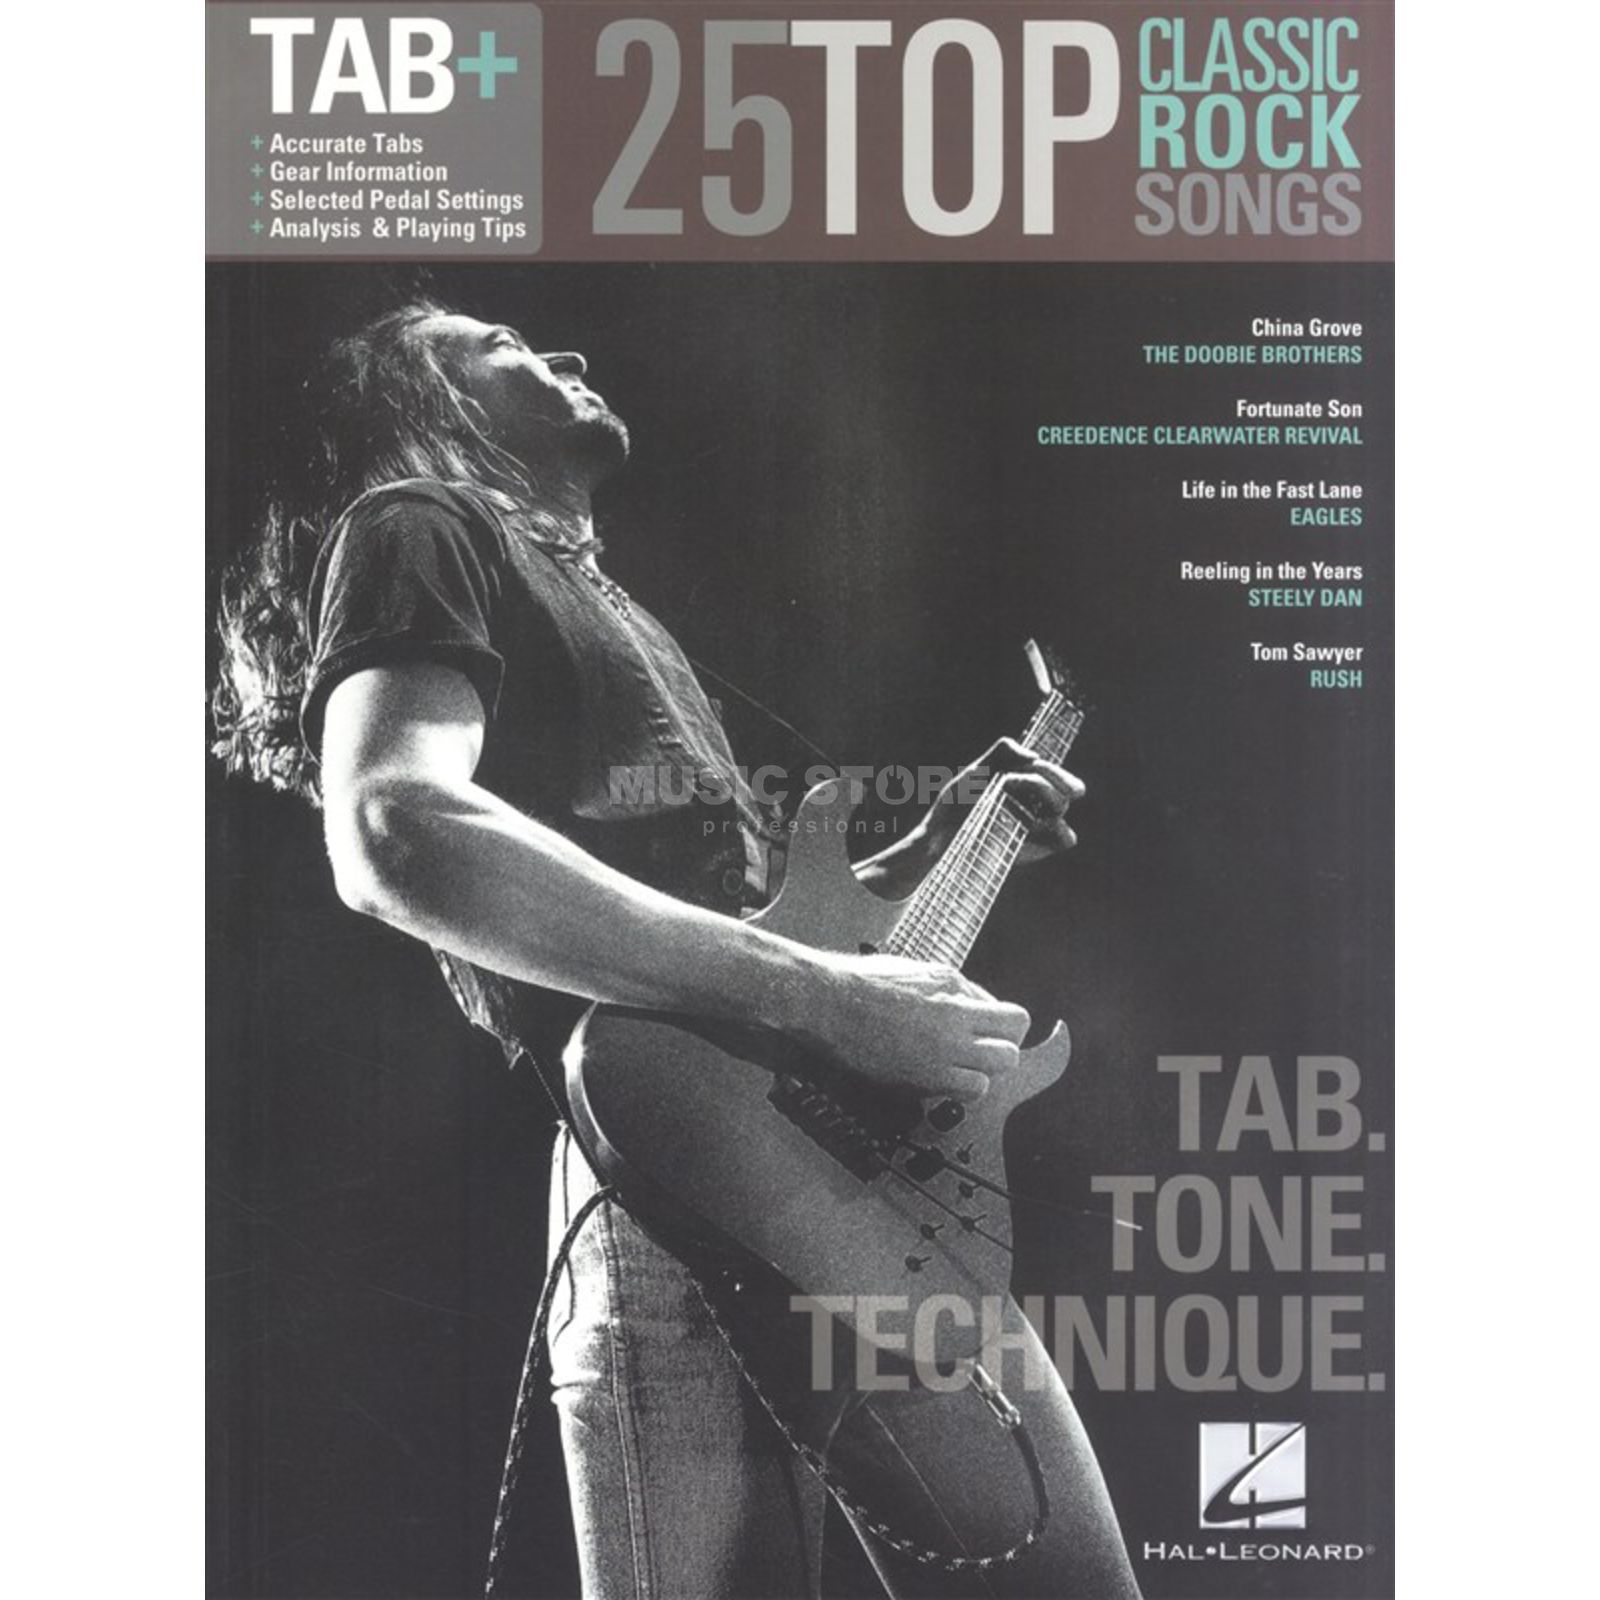 Hal Leonard Tab+: 25 Classic Rock Songs - Tab. Tone. Technique. Produktbild